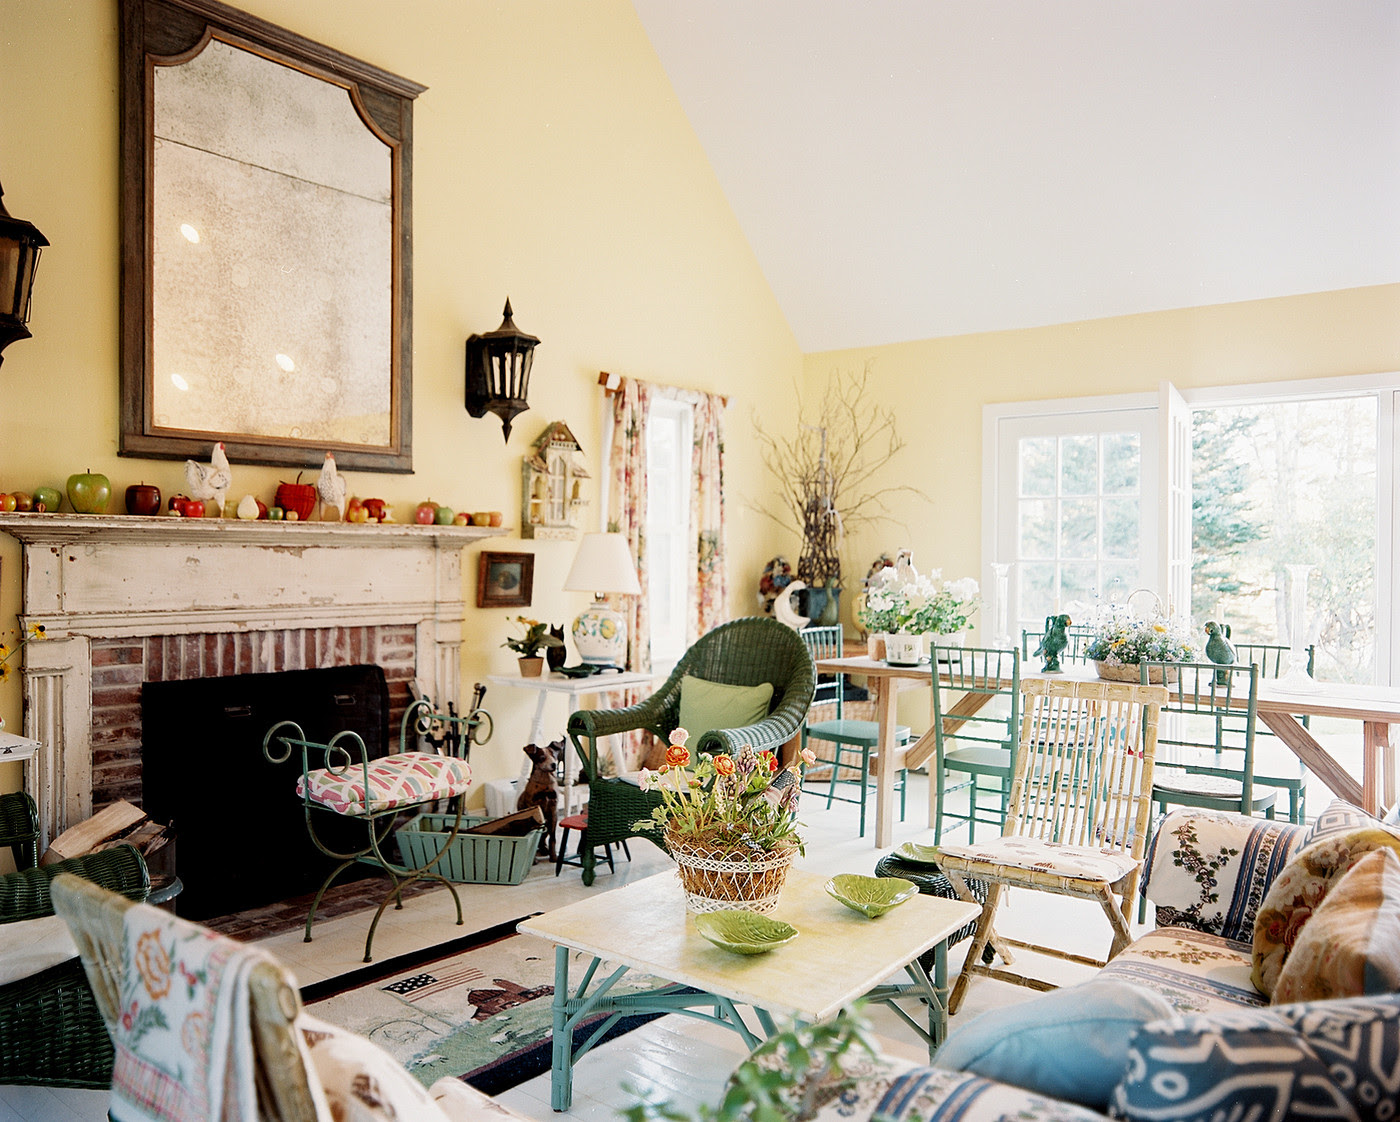 Living Room Slipcovers - A Comfort Works Review - Love ...